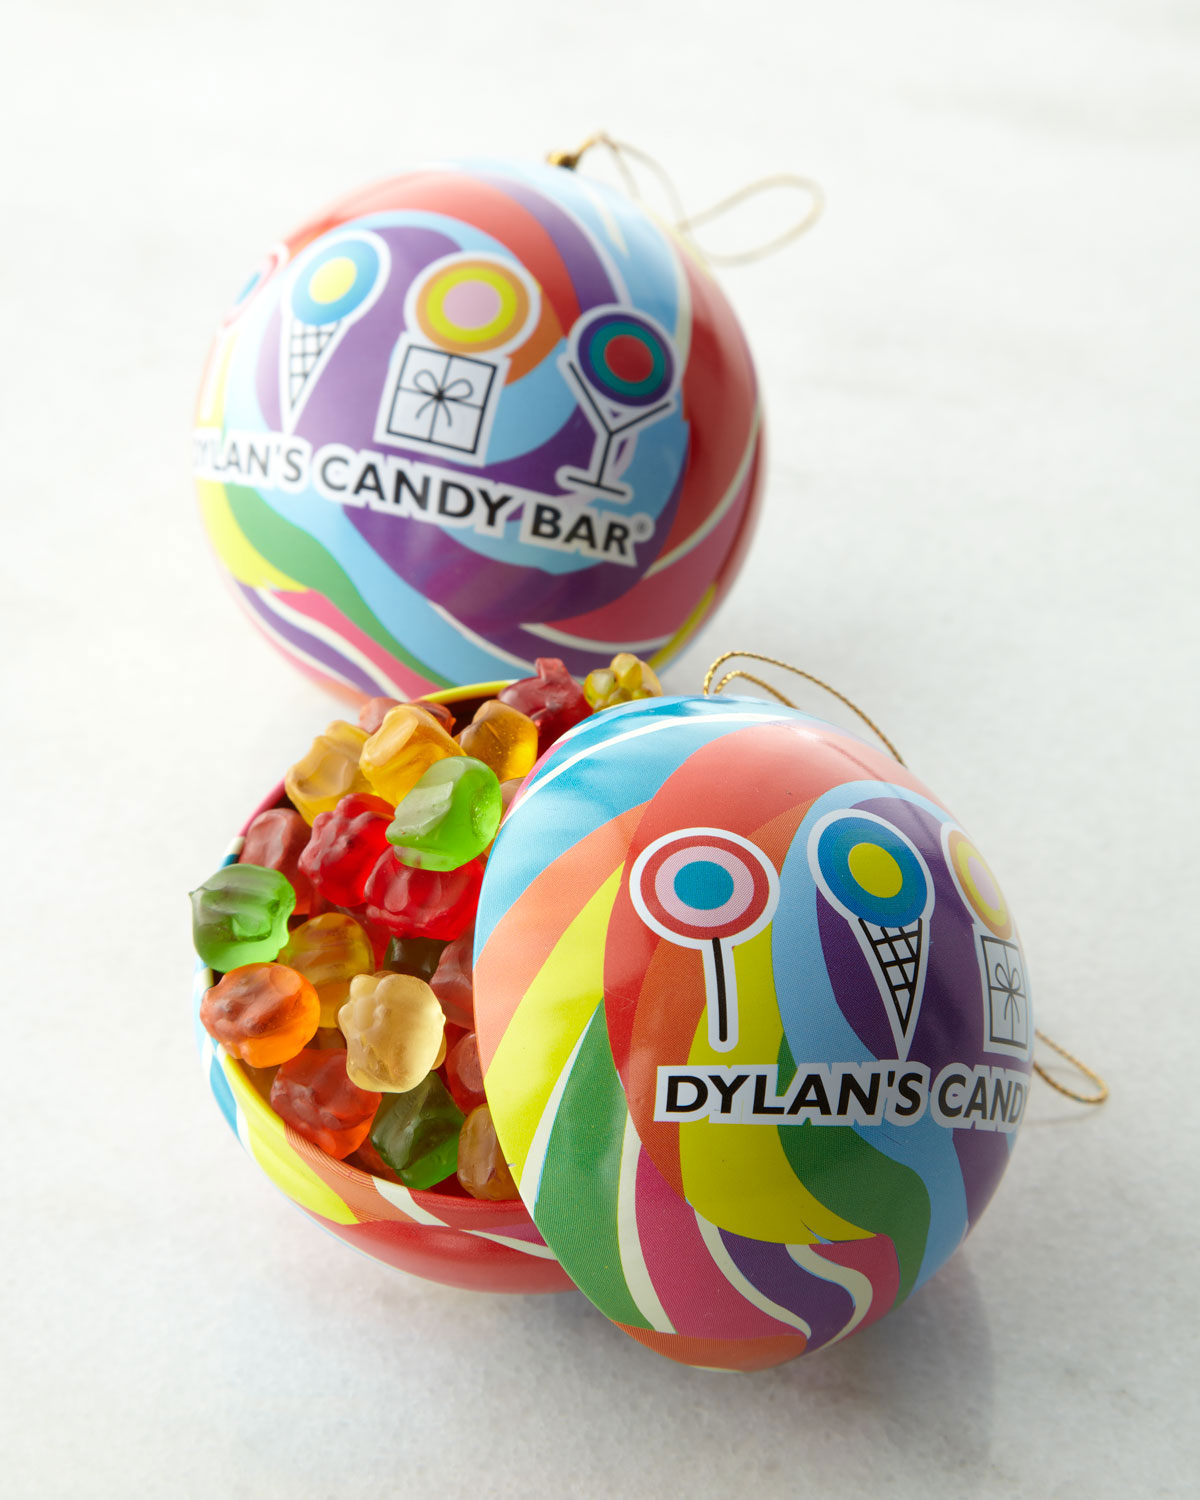 Dylan's Candy Bar Four Holiday Ornaments